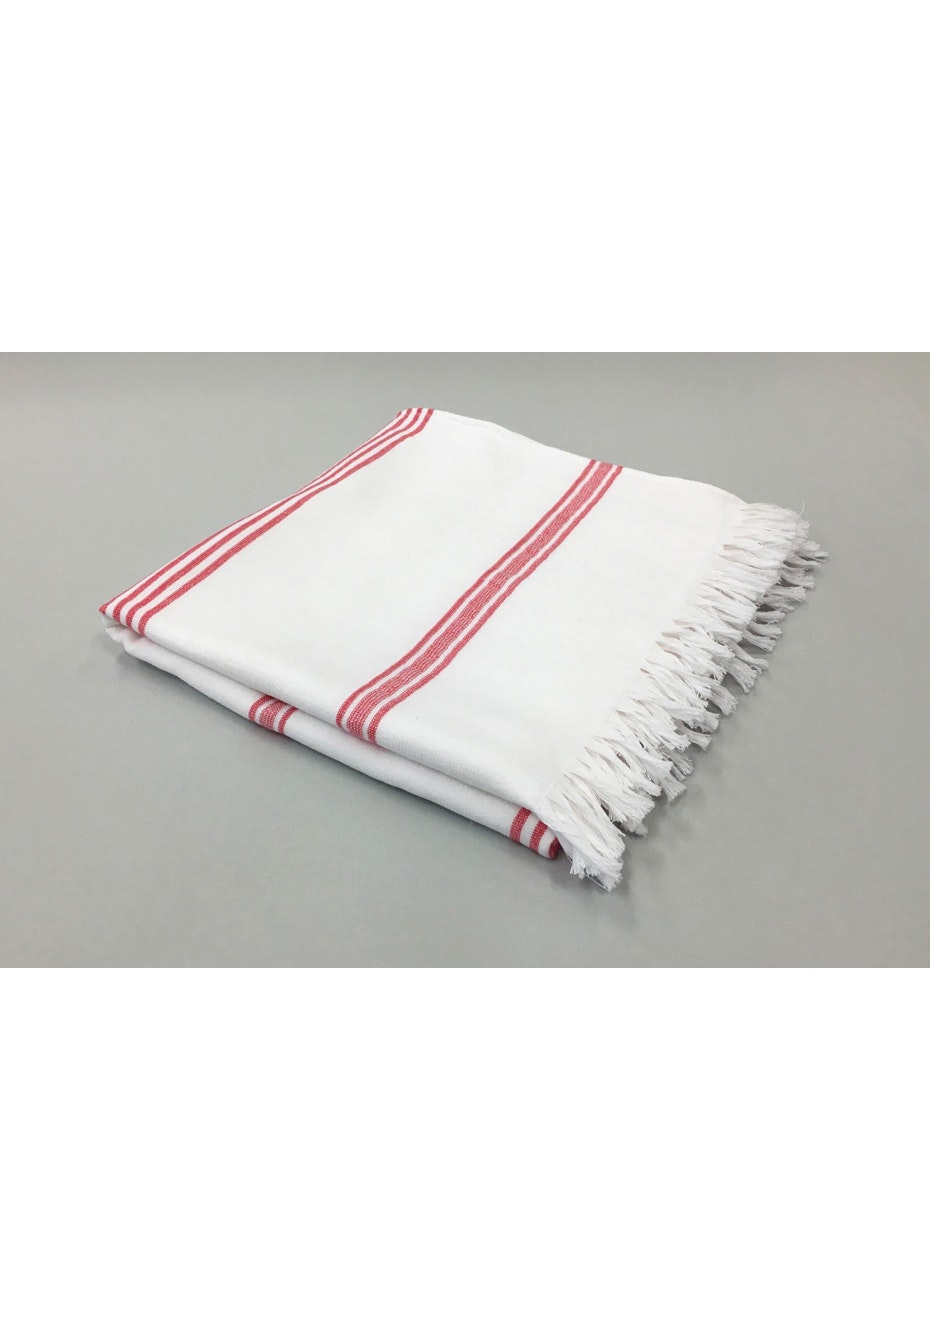 2 Pack White with Pink Stripe Cotton Turkish Towel